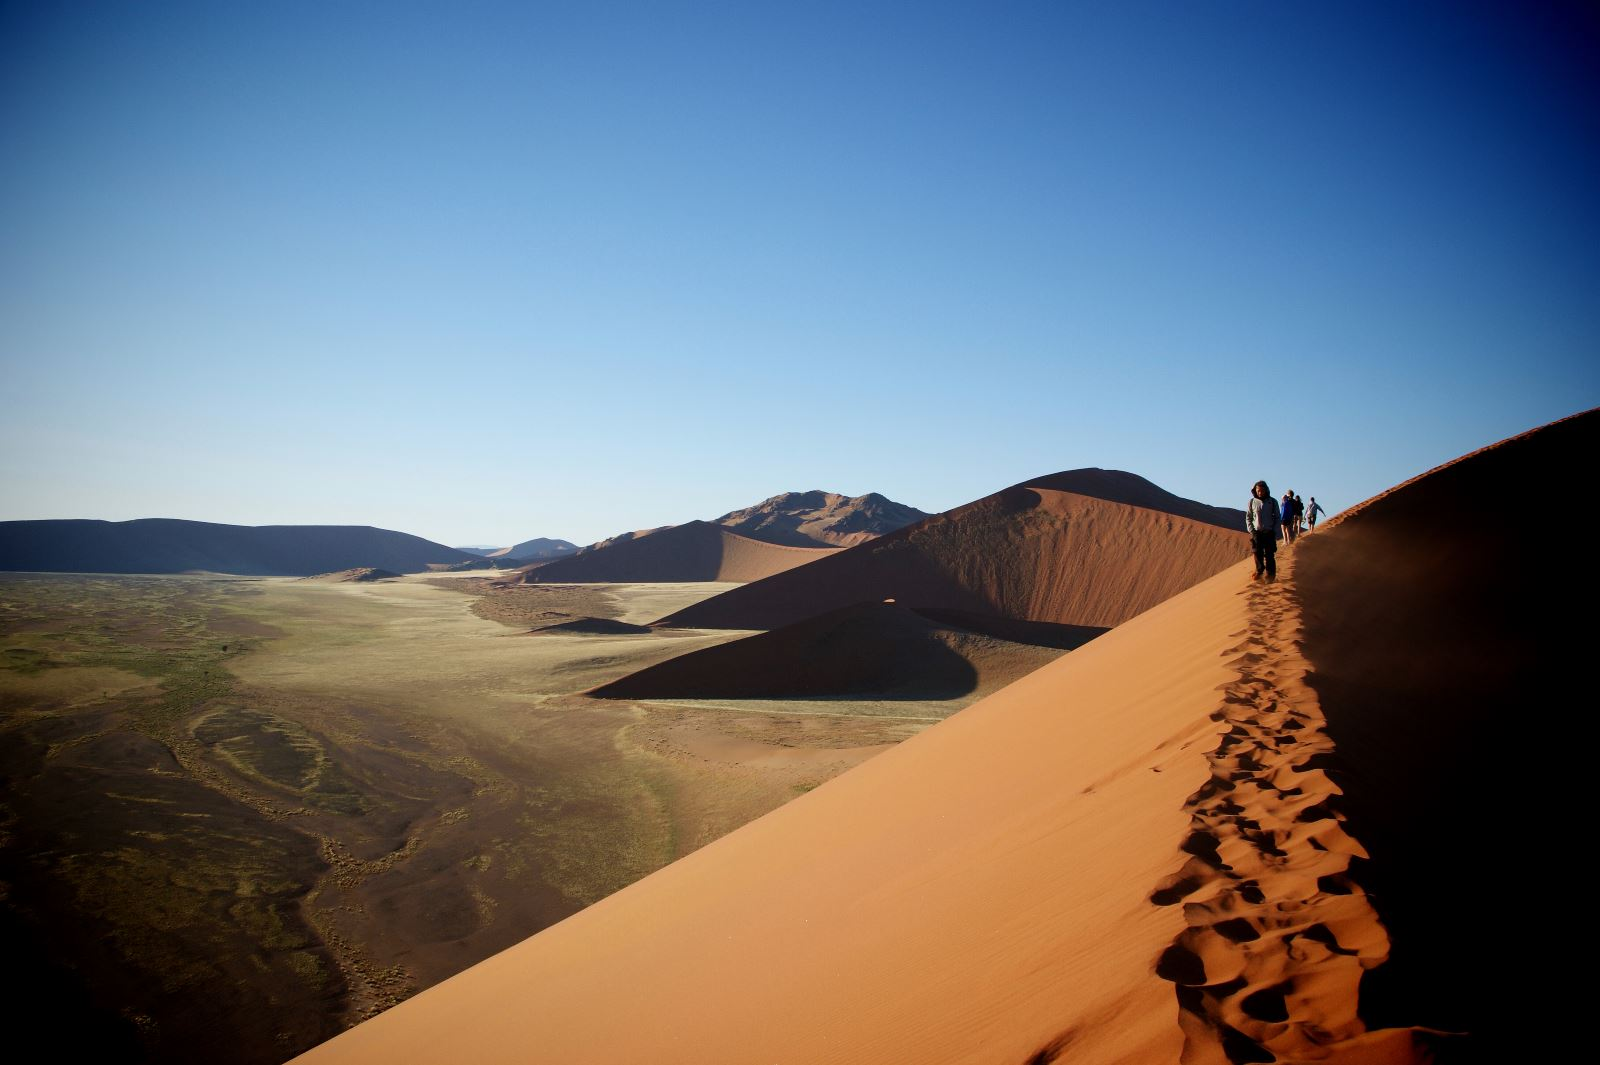 Dunes in Sossusvlei, Namib Naukluft National Park, Namibia